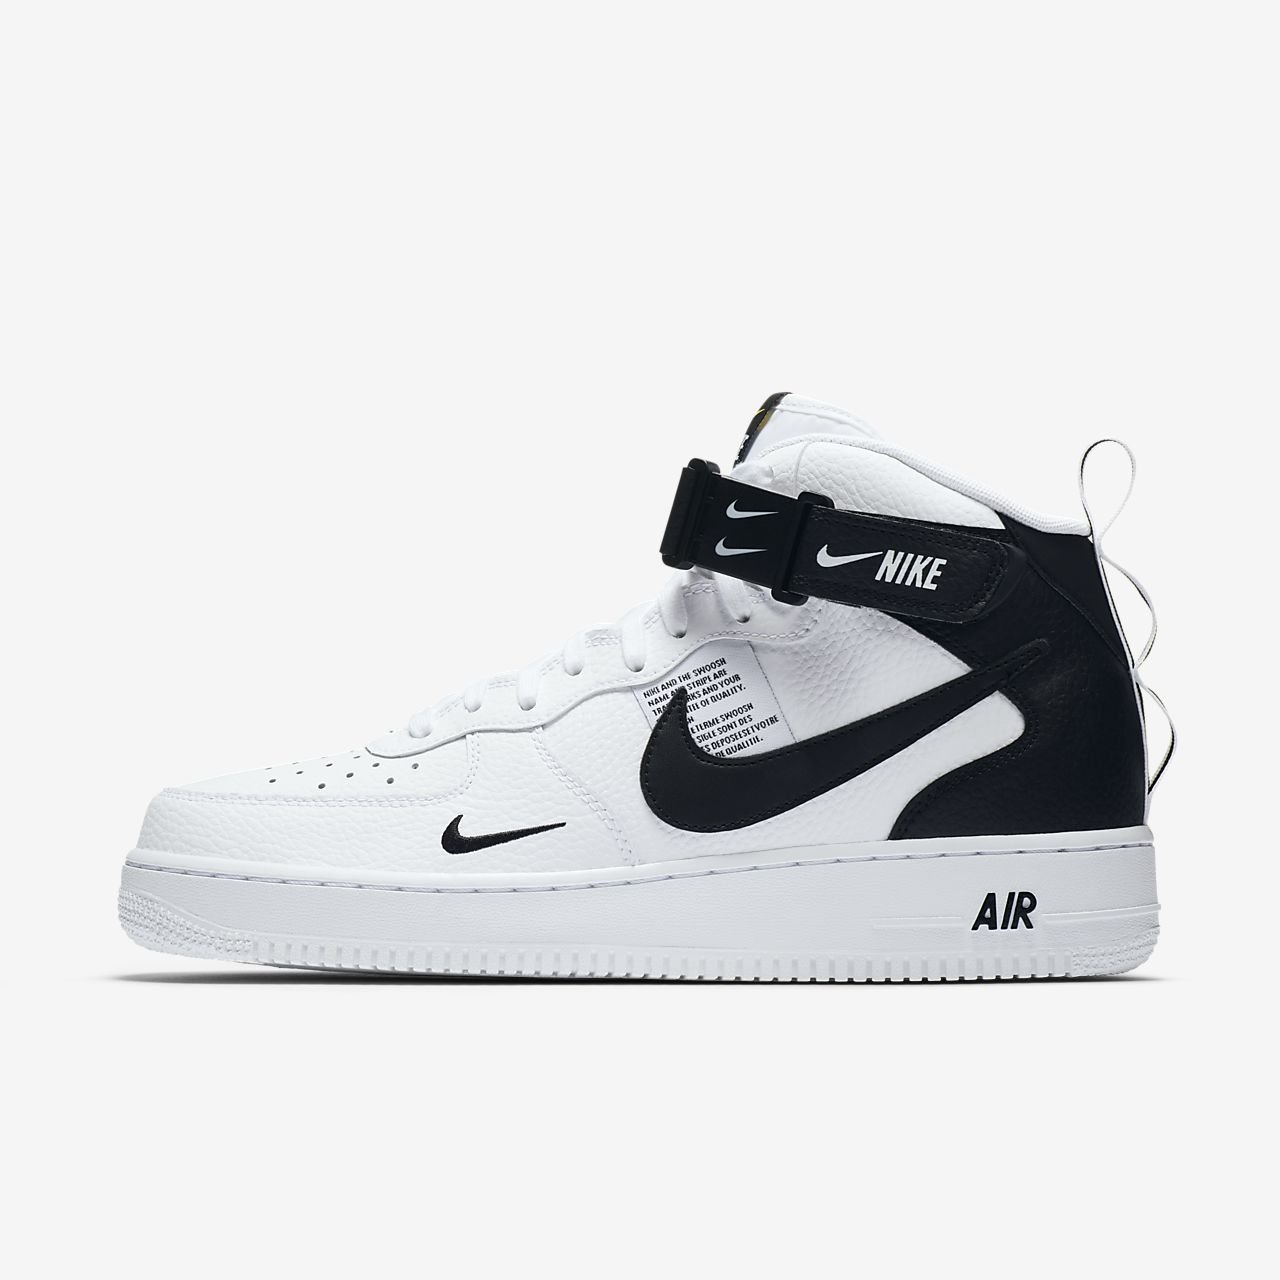 sports shoes 1401f 2bc10 Nike Air Force 1 07 Mid LV8